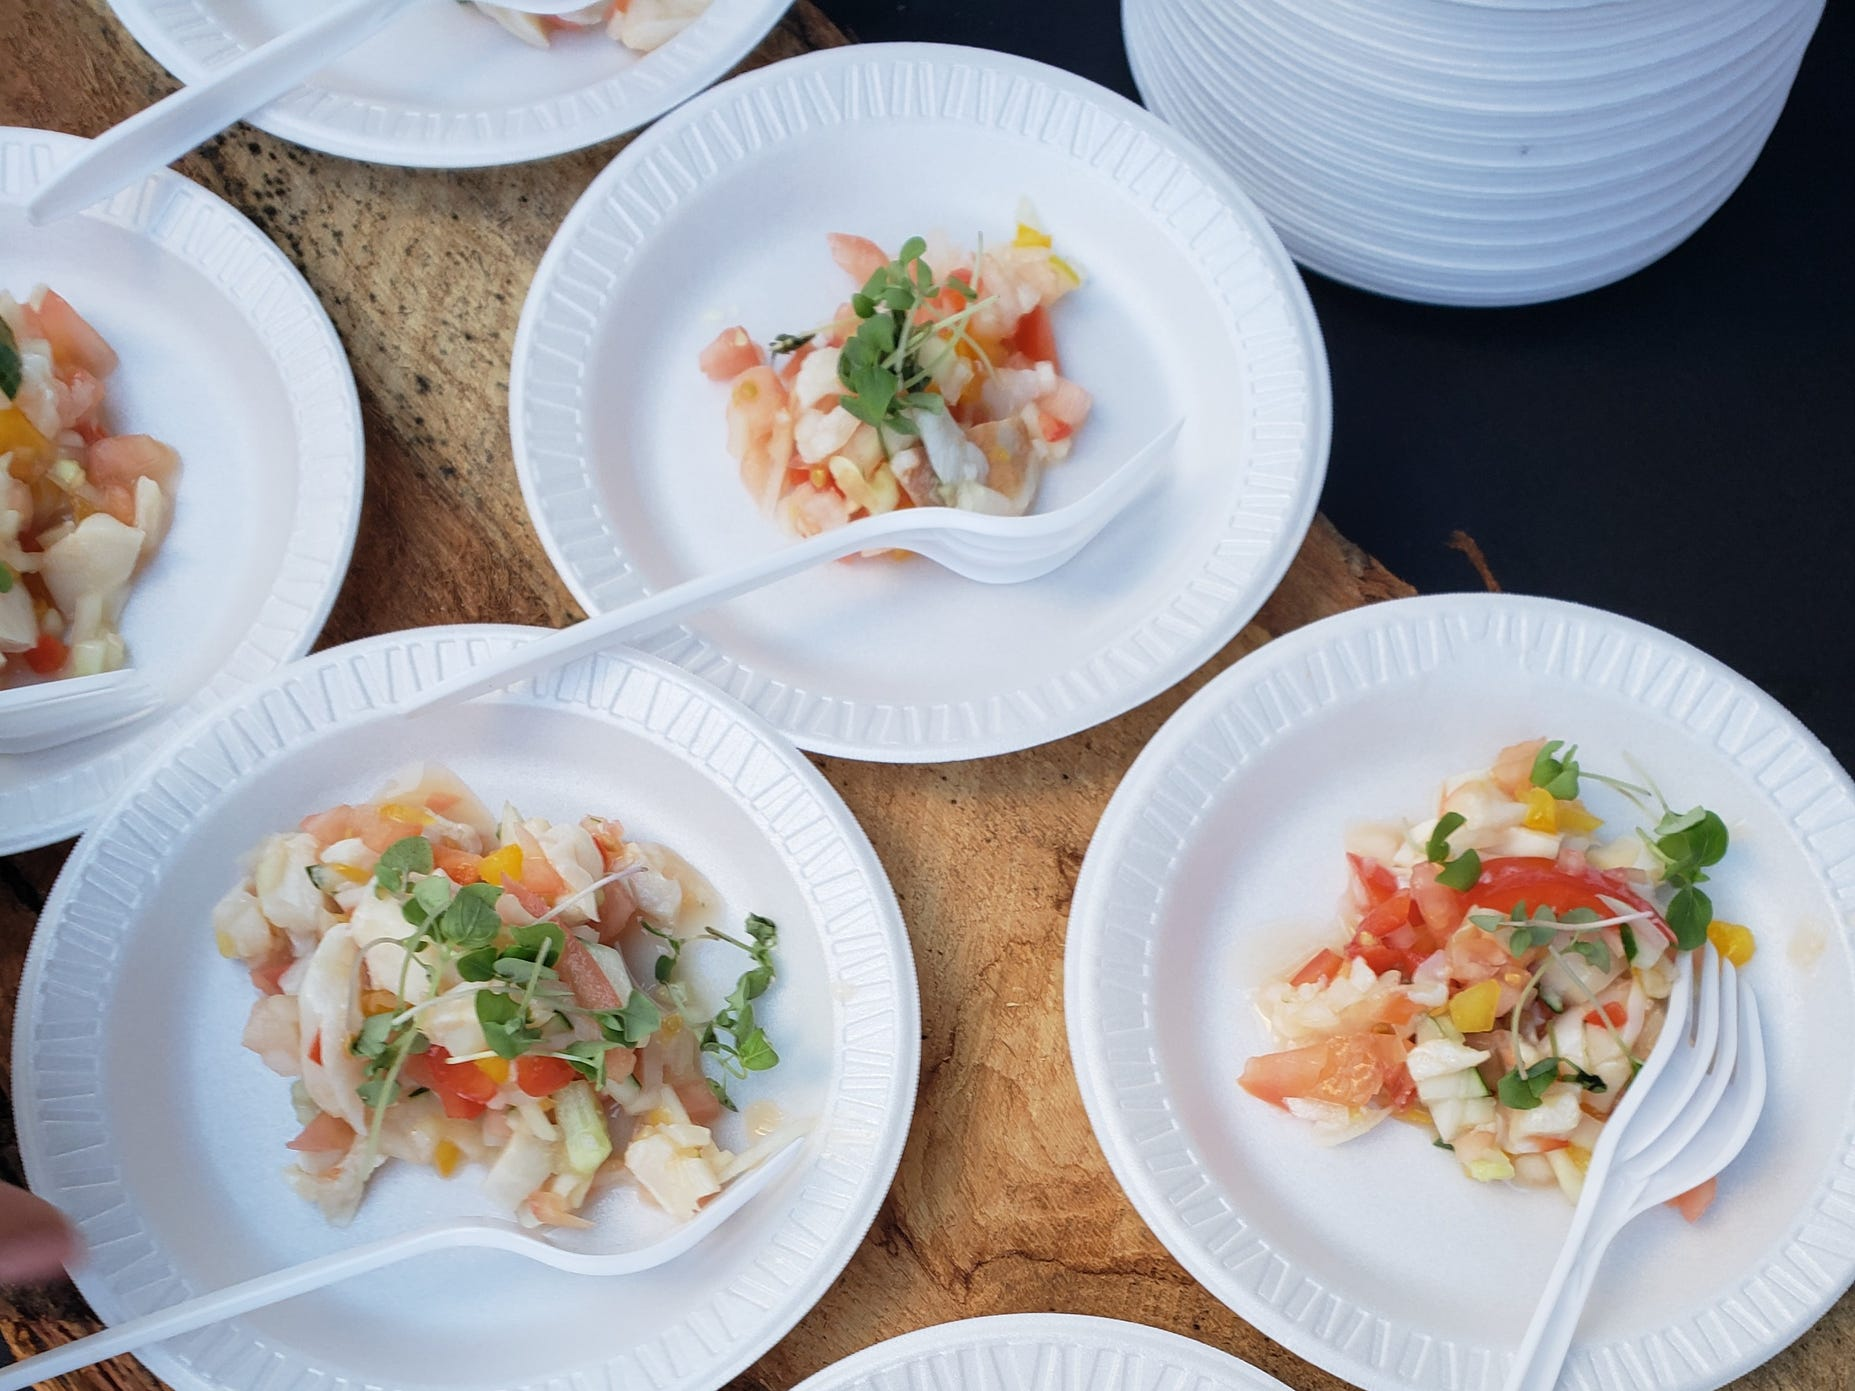 River Bistro in Grandmont Rosedale provided a fresh tasting conch salad with a Caribbean flare at the Detroit Free Press Wine & Food Experience on Sept. 15, 2018 in Detroit.